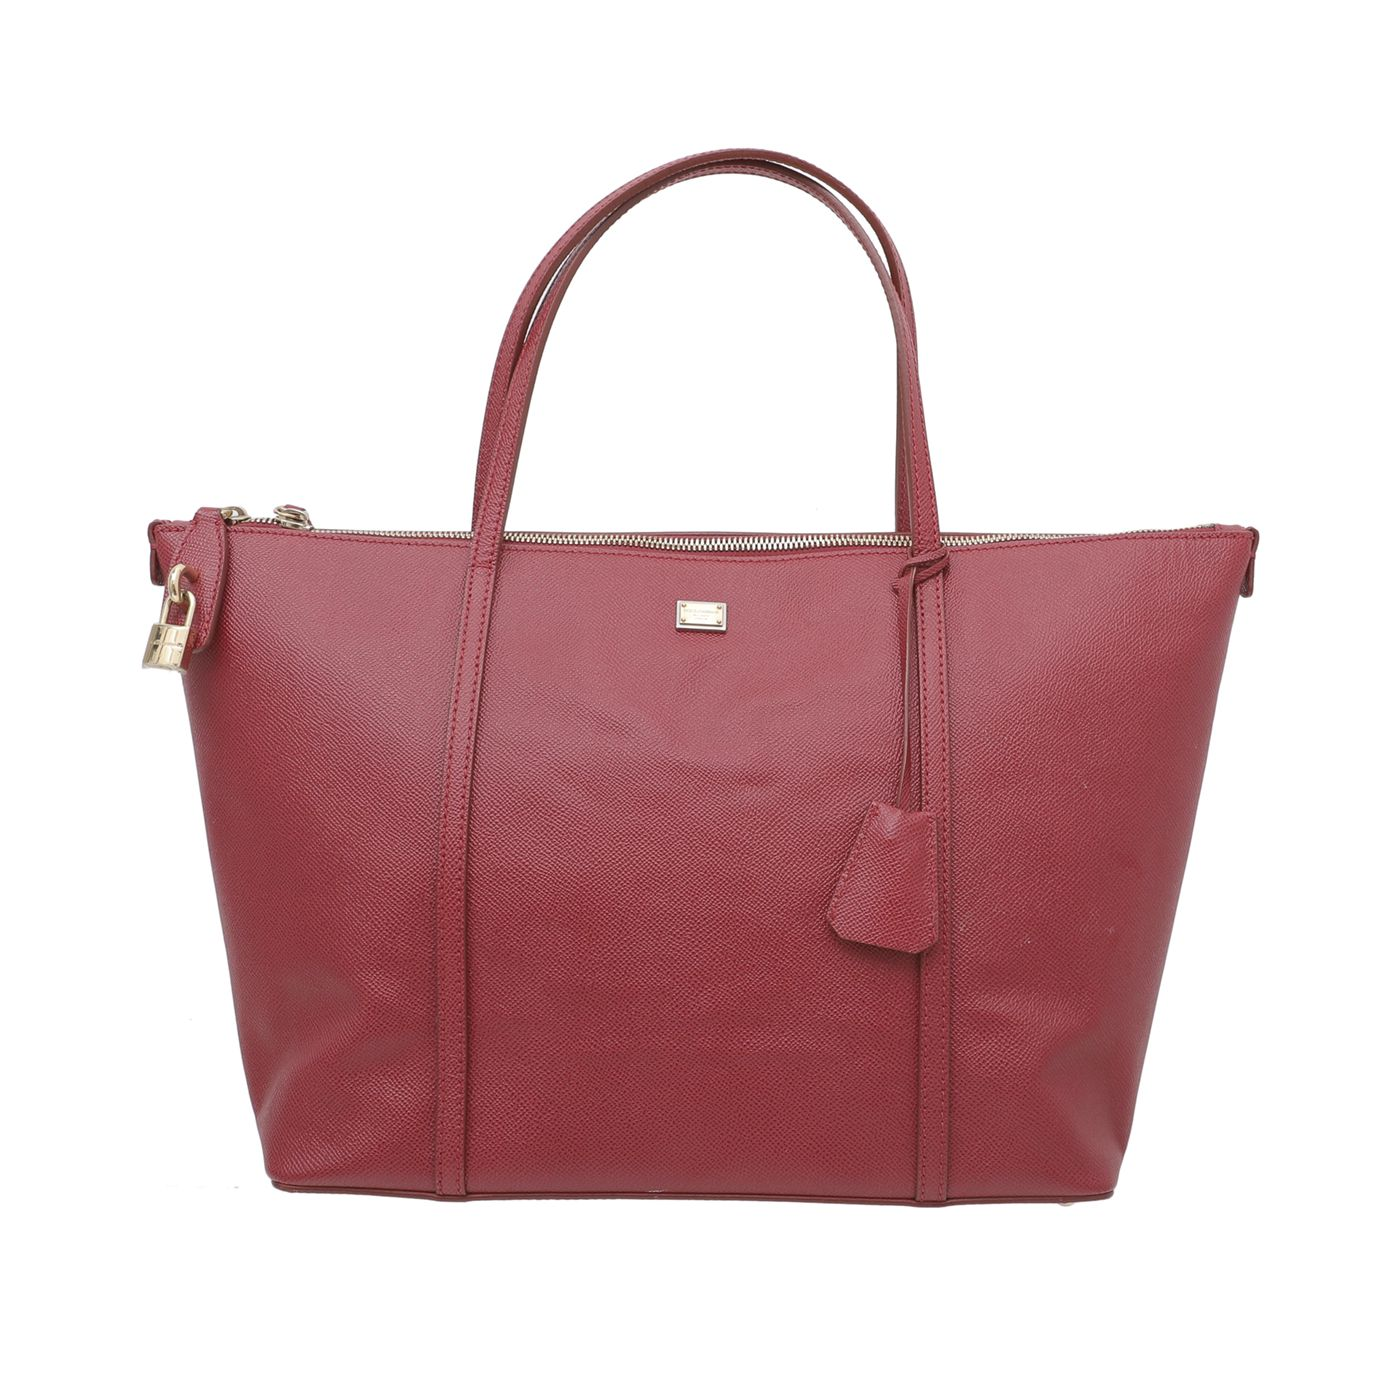 Dolce & Gabbana Red Dauphine Miss Escape Tote Bag